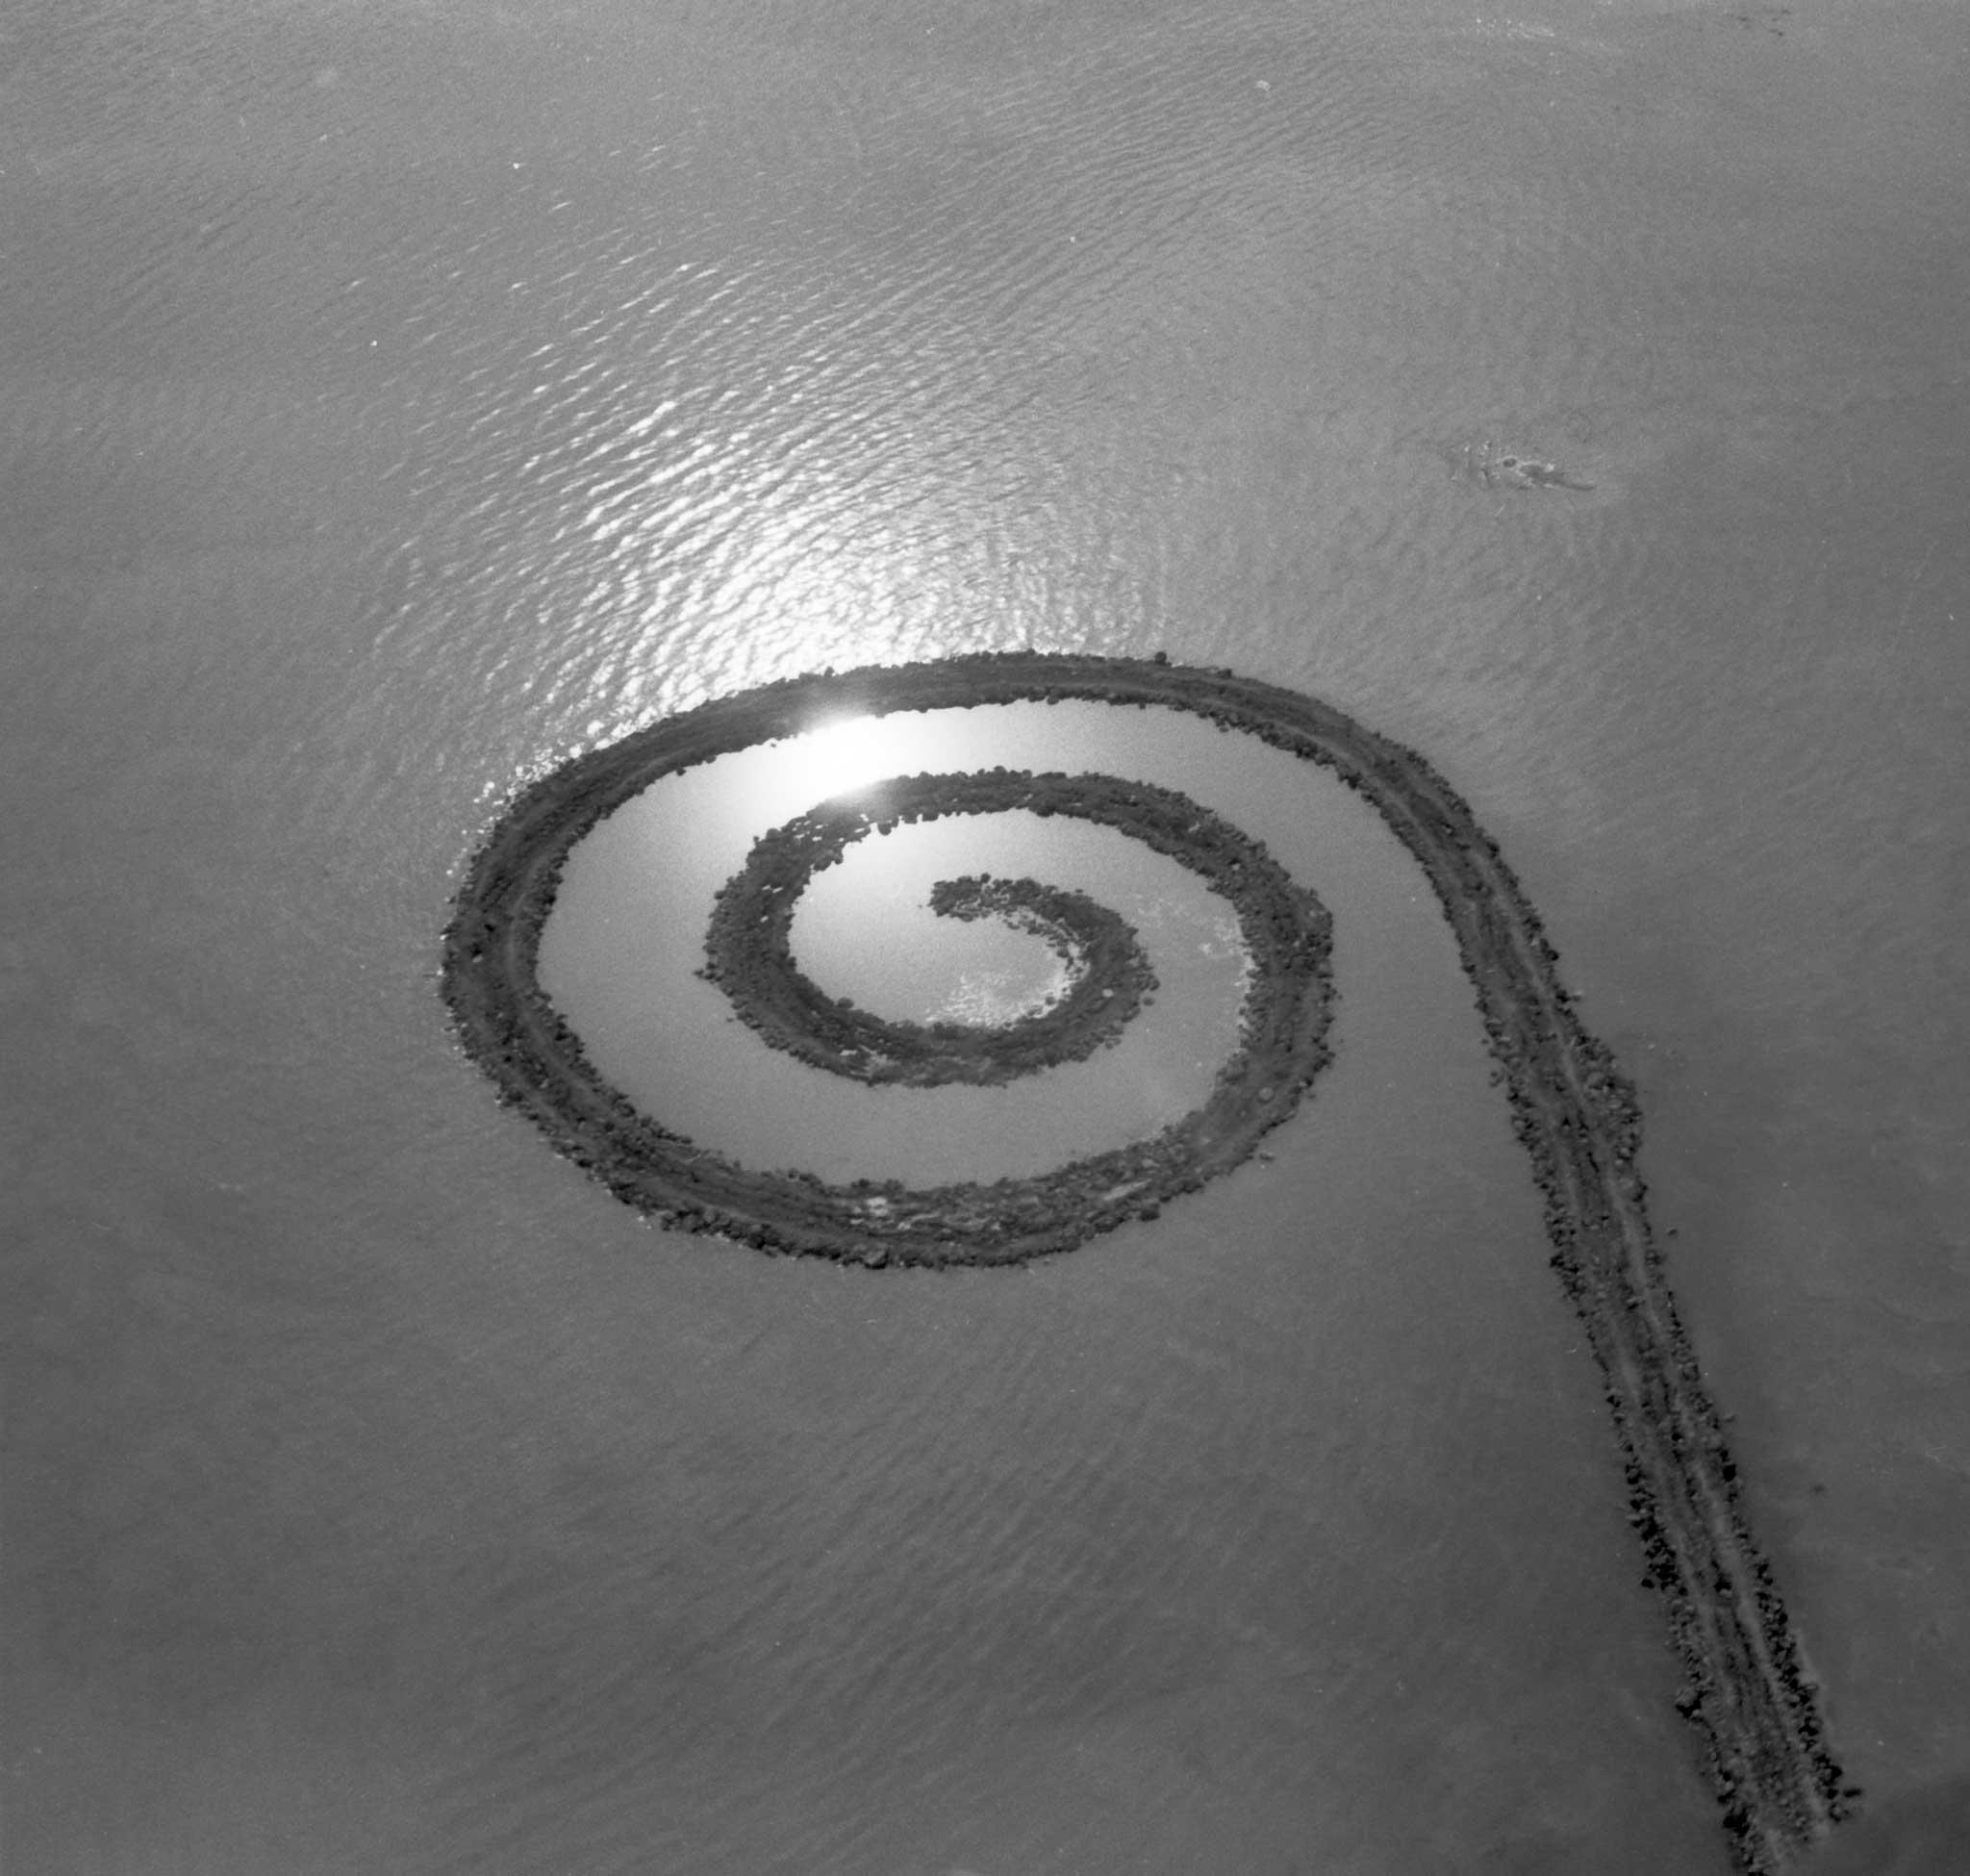 black and white, aerial image or an earthen jetty with a spiral termination extending into a body of water